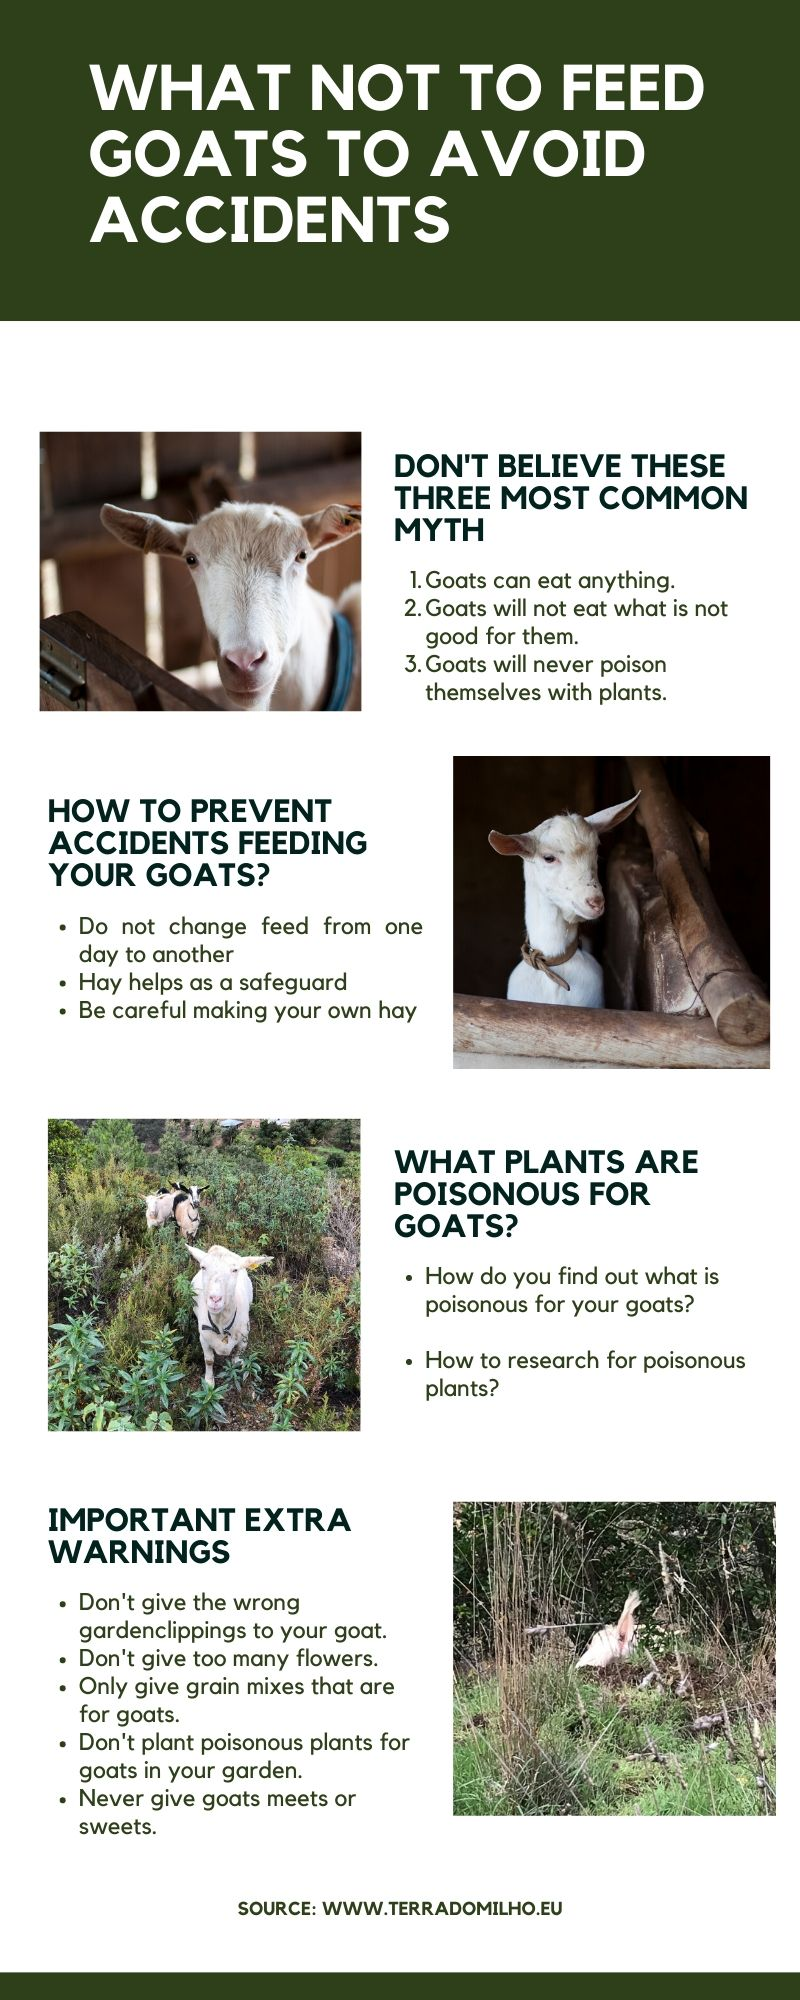 What goats do not eat